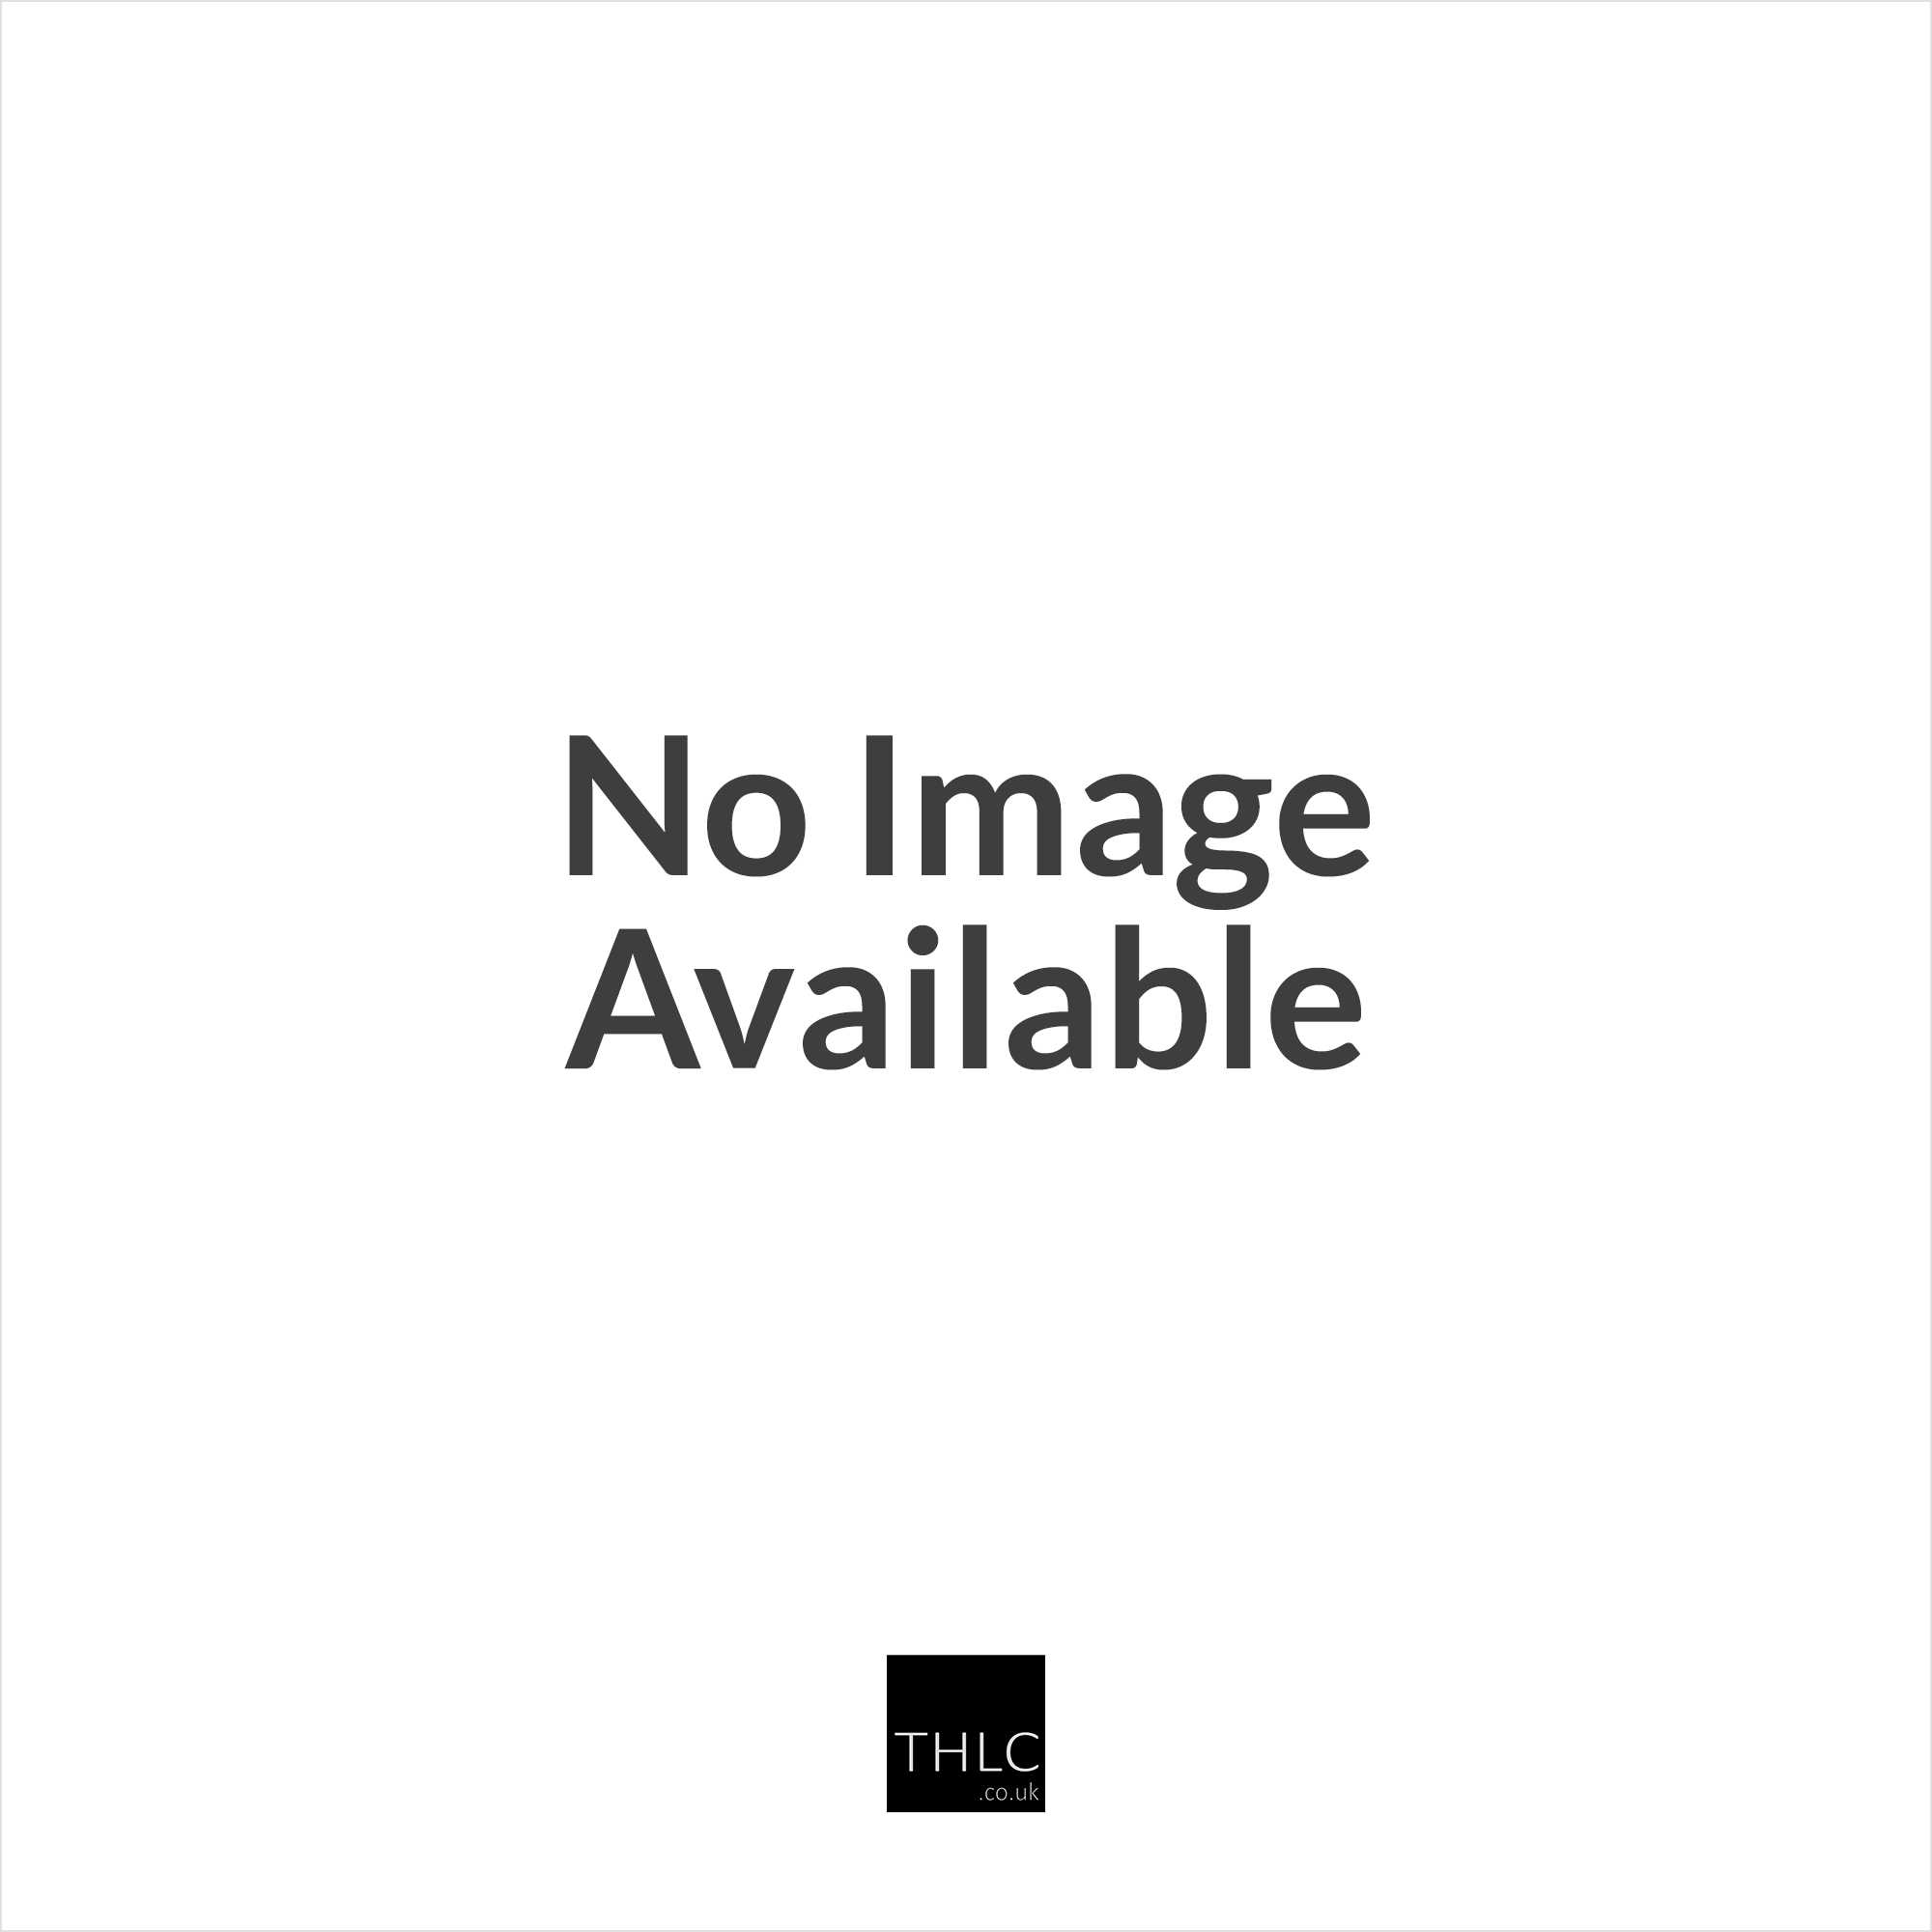 Collier 4 Light Ceiling Pendant In Heritage Brass Finish HK/COLLIER/P